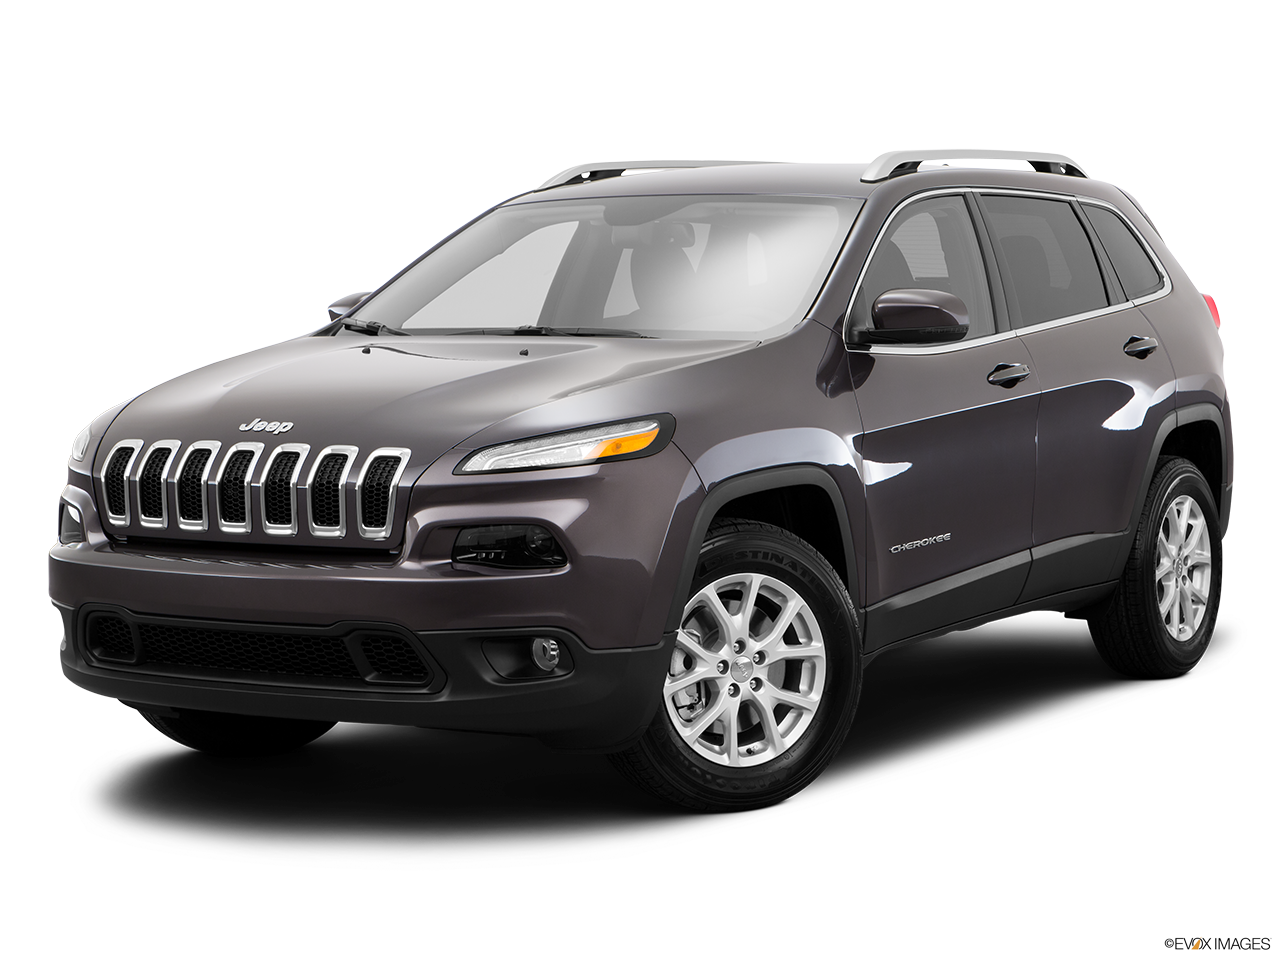 Test Drive A 2016 Jeep Cherokee at Premier Jeep in Tracy